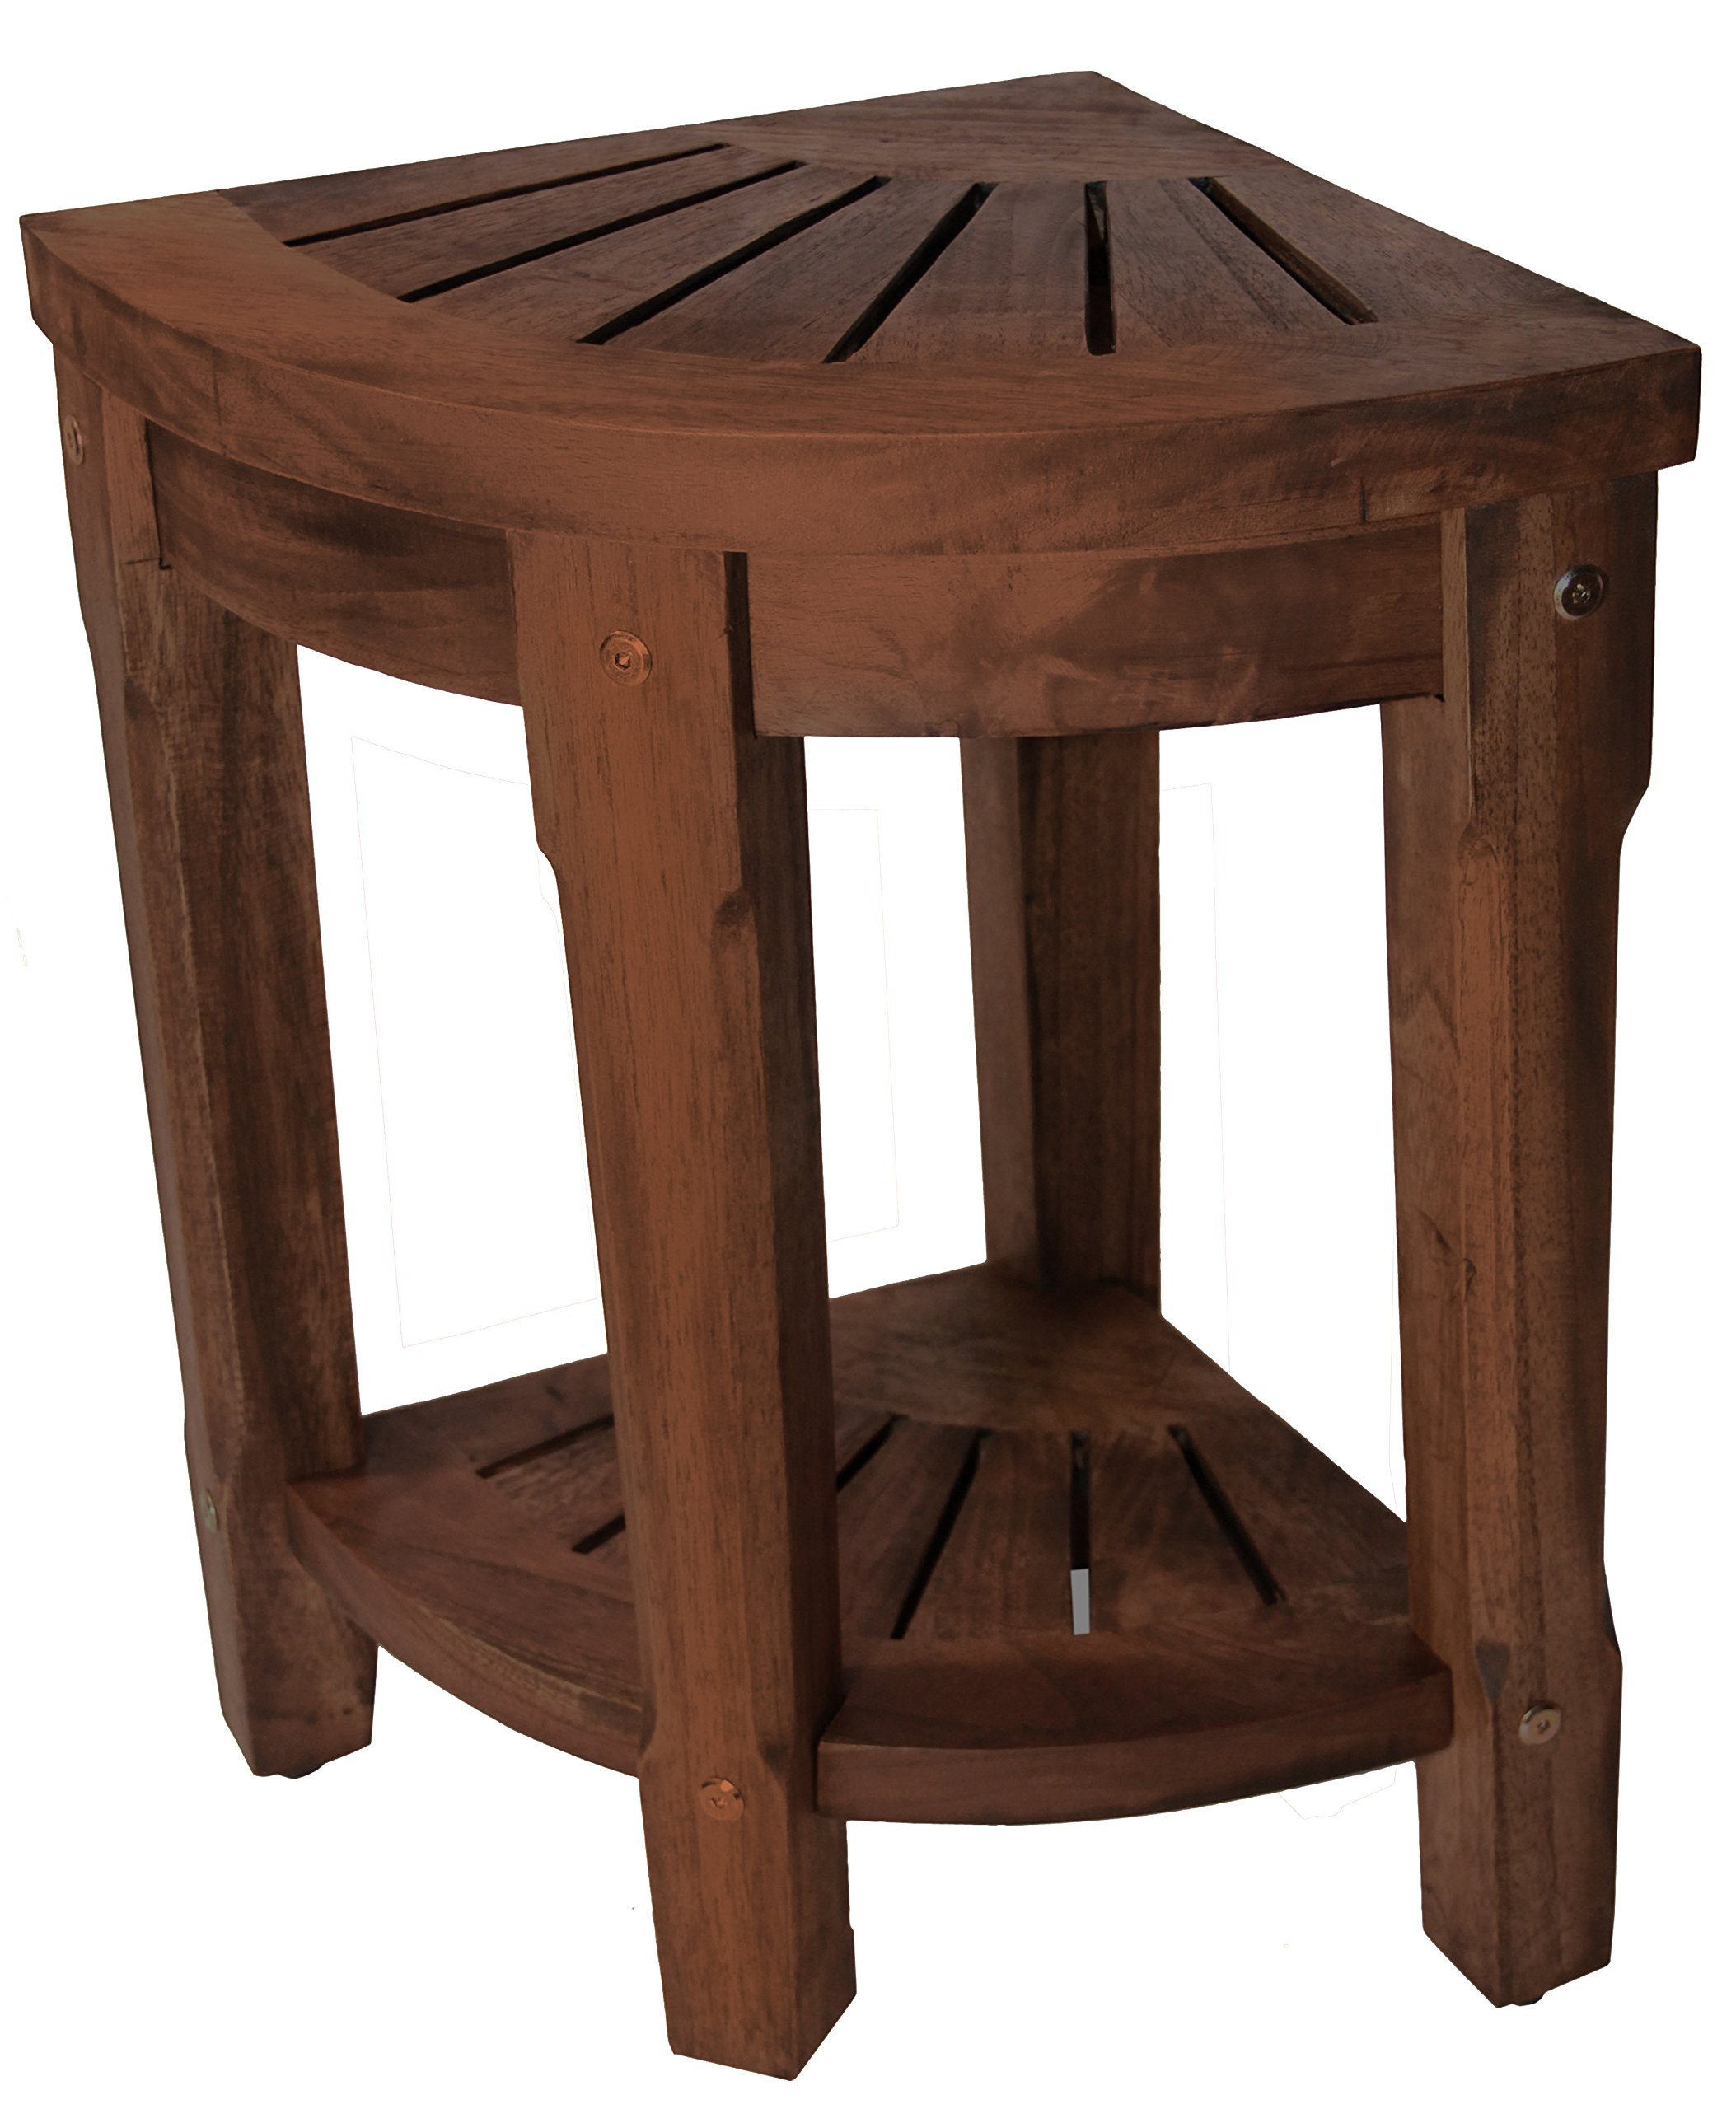 18'' Small Corner Teak Shower and Spa Bench Table